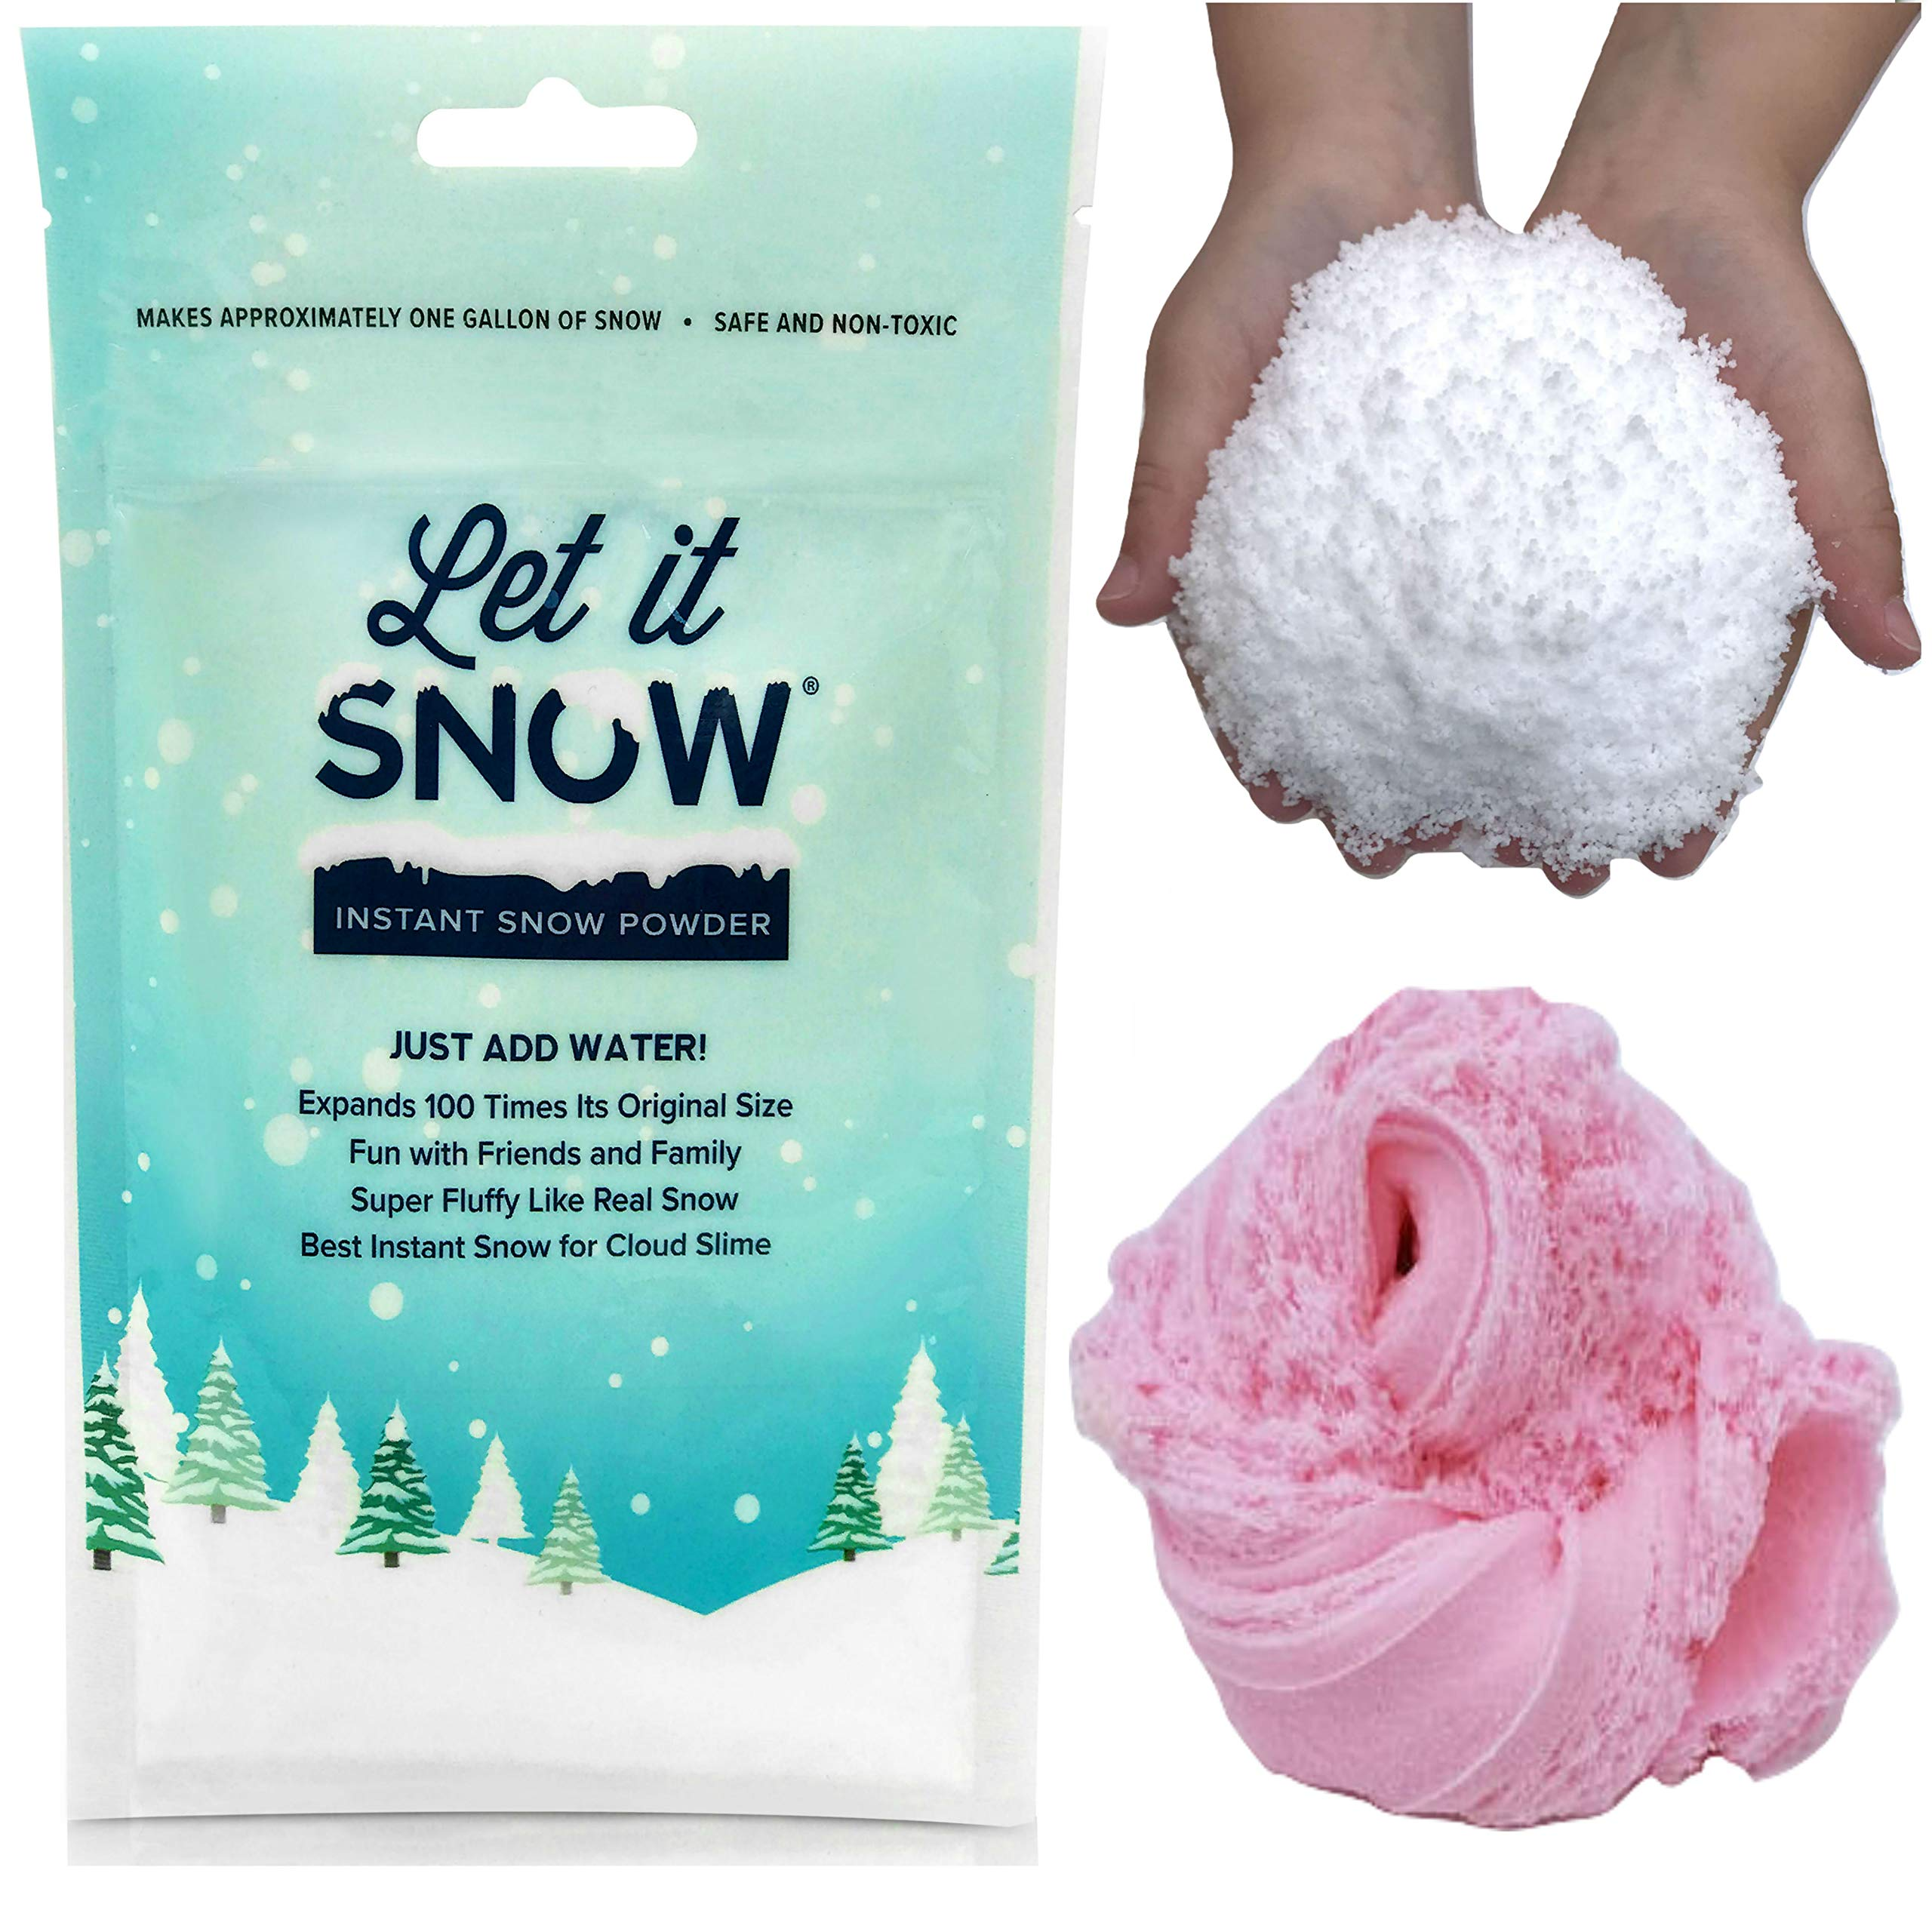 Let it Snow Instant Snow Powder (4 Gallons) and Elmer's Glue (1 Gallon) - Mix Makes Magical Fluffy White Artificial Snow - Perfect for Cloud Slime! Frozen Theme Birthday Parties and Snow Decorations! by Let it Snow (Image #2)